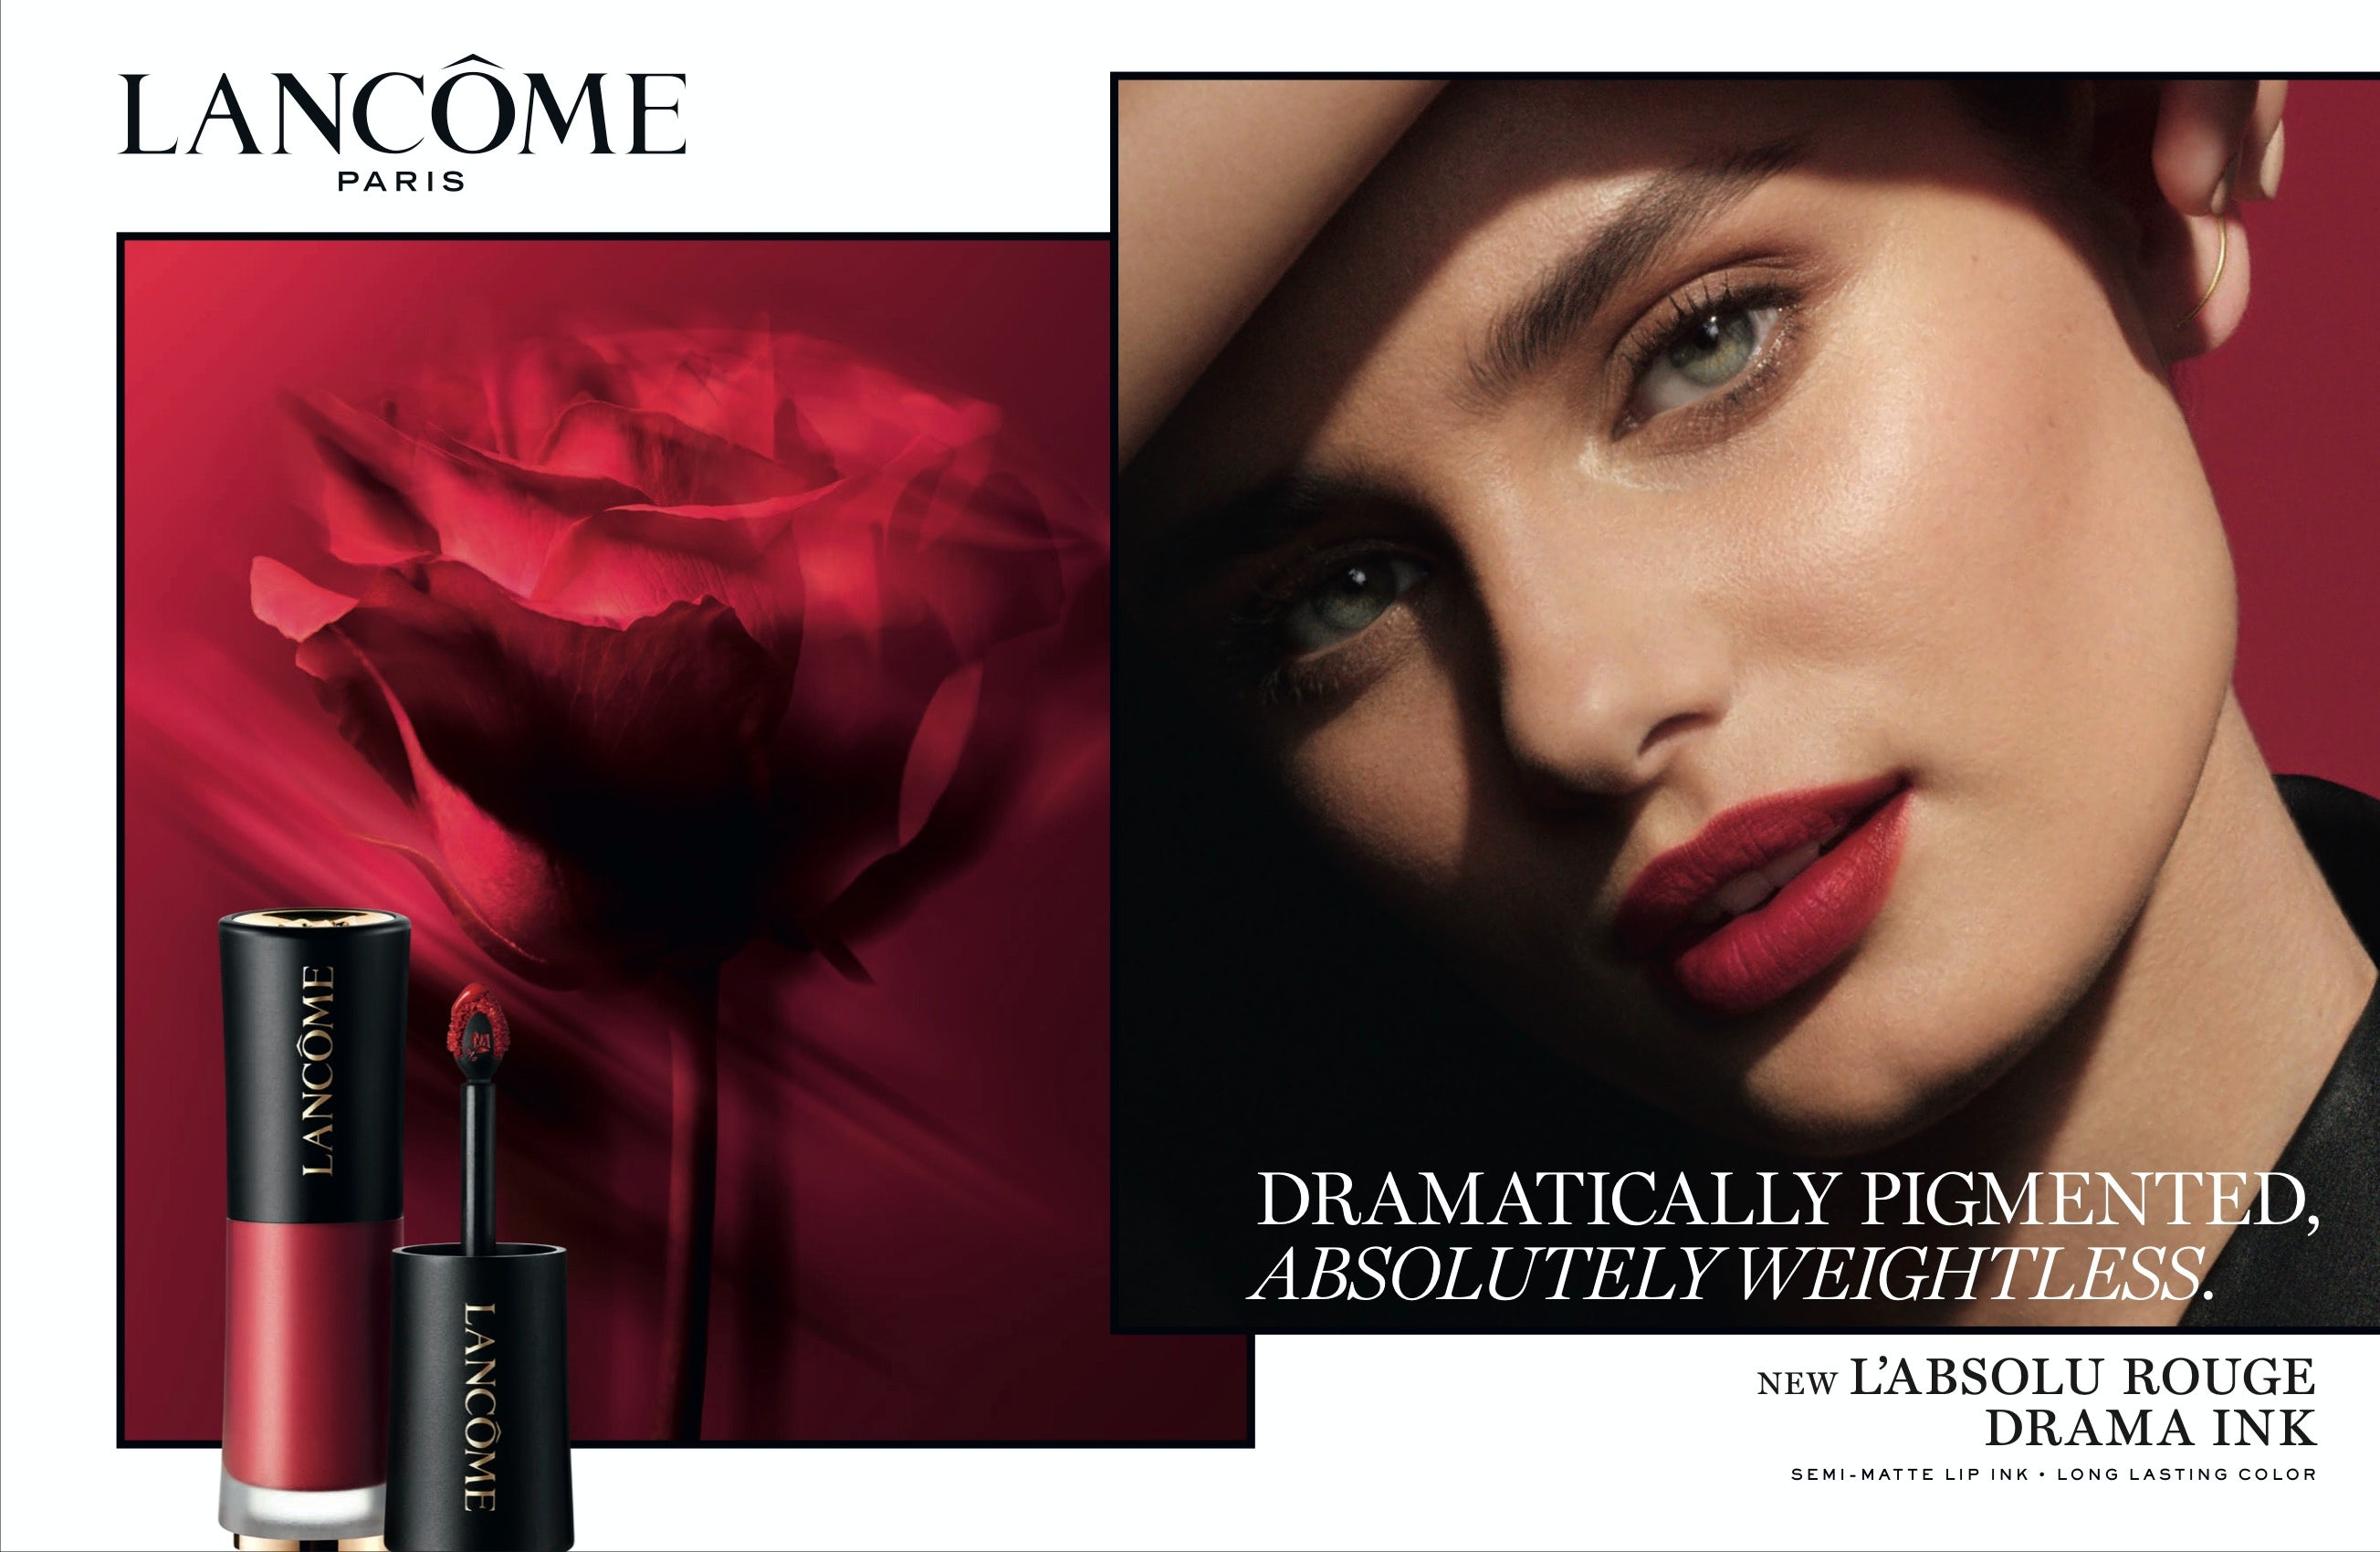 An ad Lancôme's for Drama Ink liquid lip colour, the launch of which was moved up ahead of the pandemic. Courtesy Lancôme